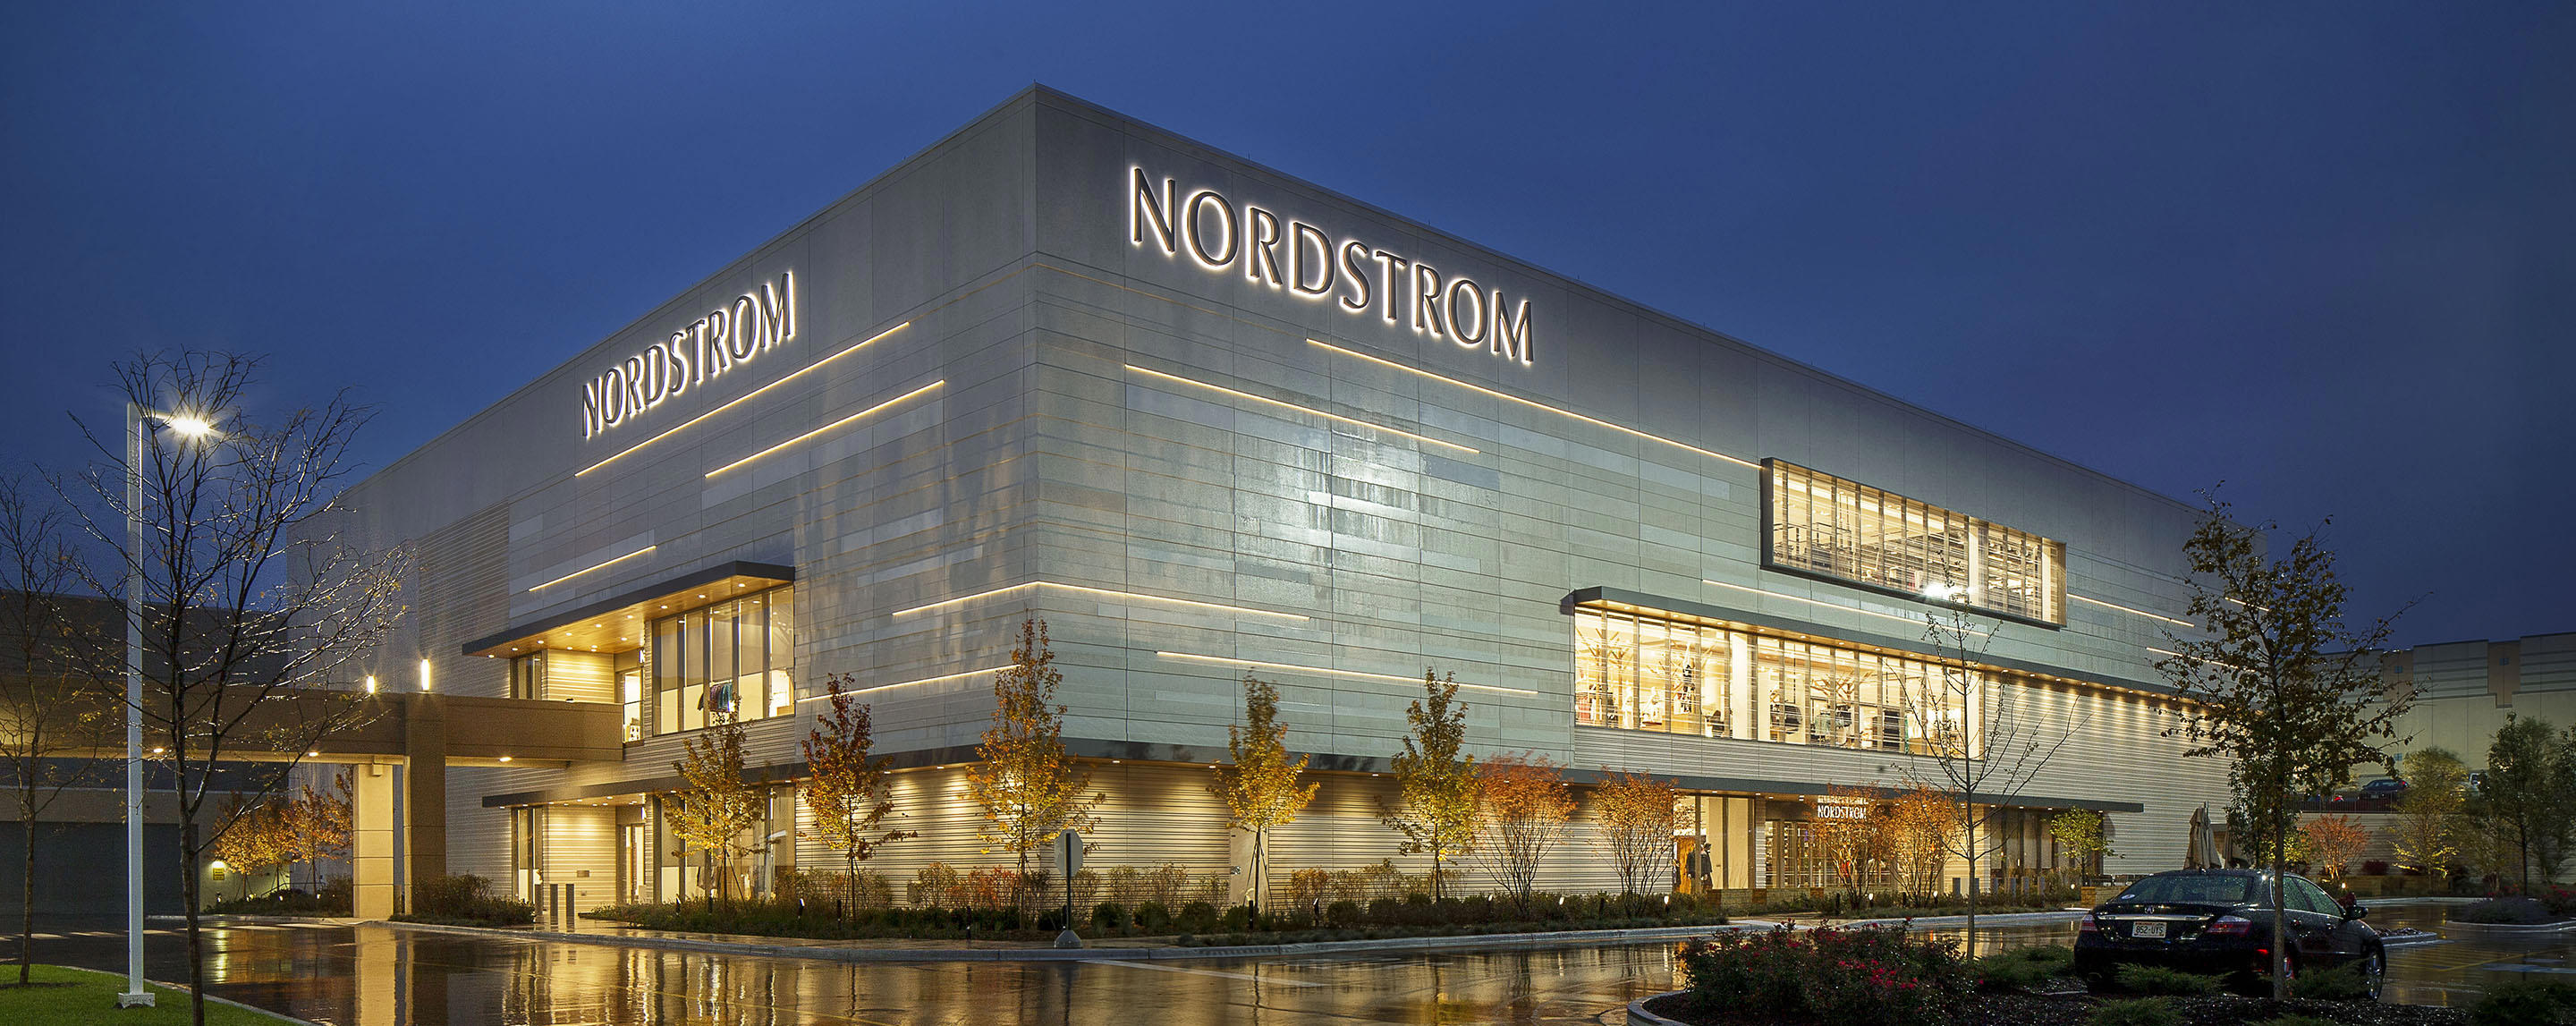 A Nordstrom shines brightly in the dusk, next to a single vehicle in its parking lot.